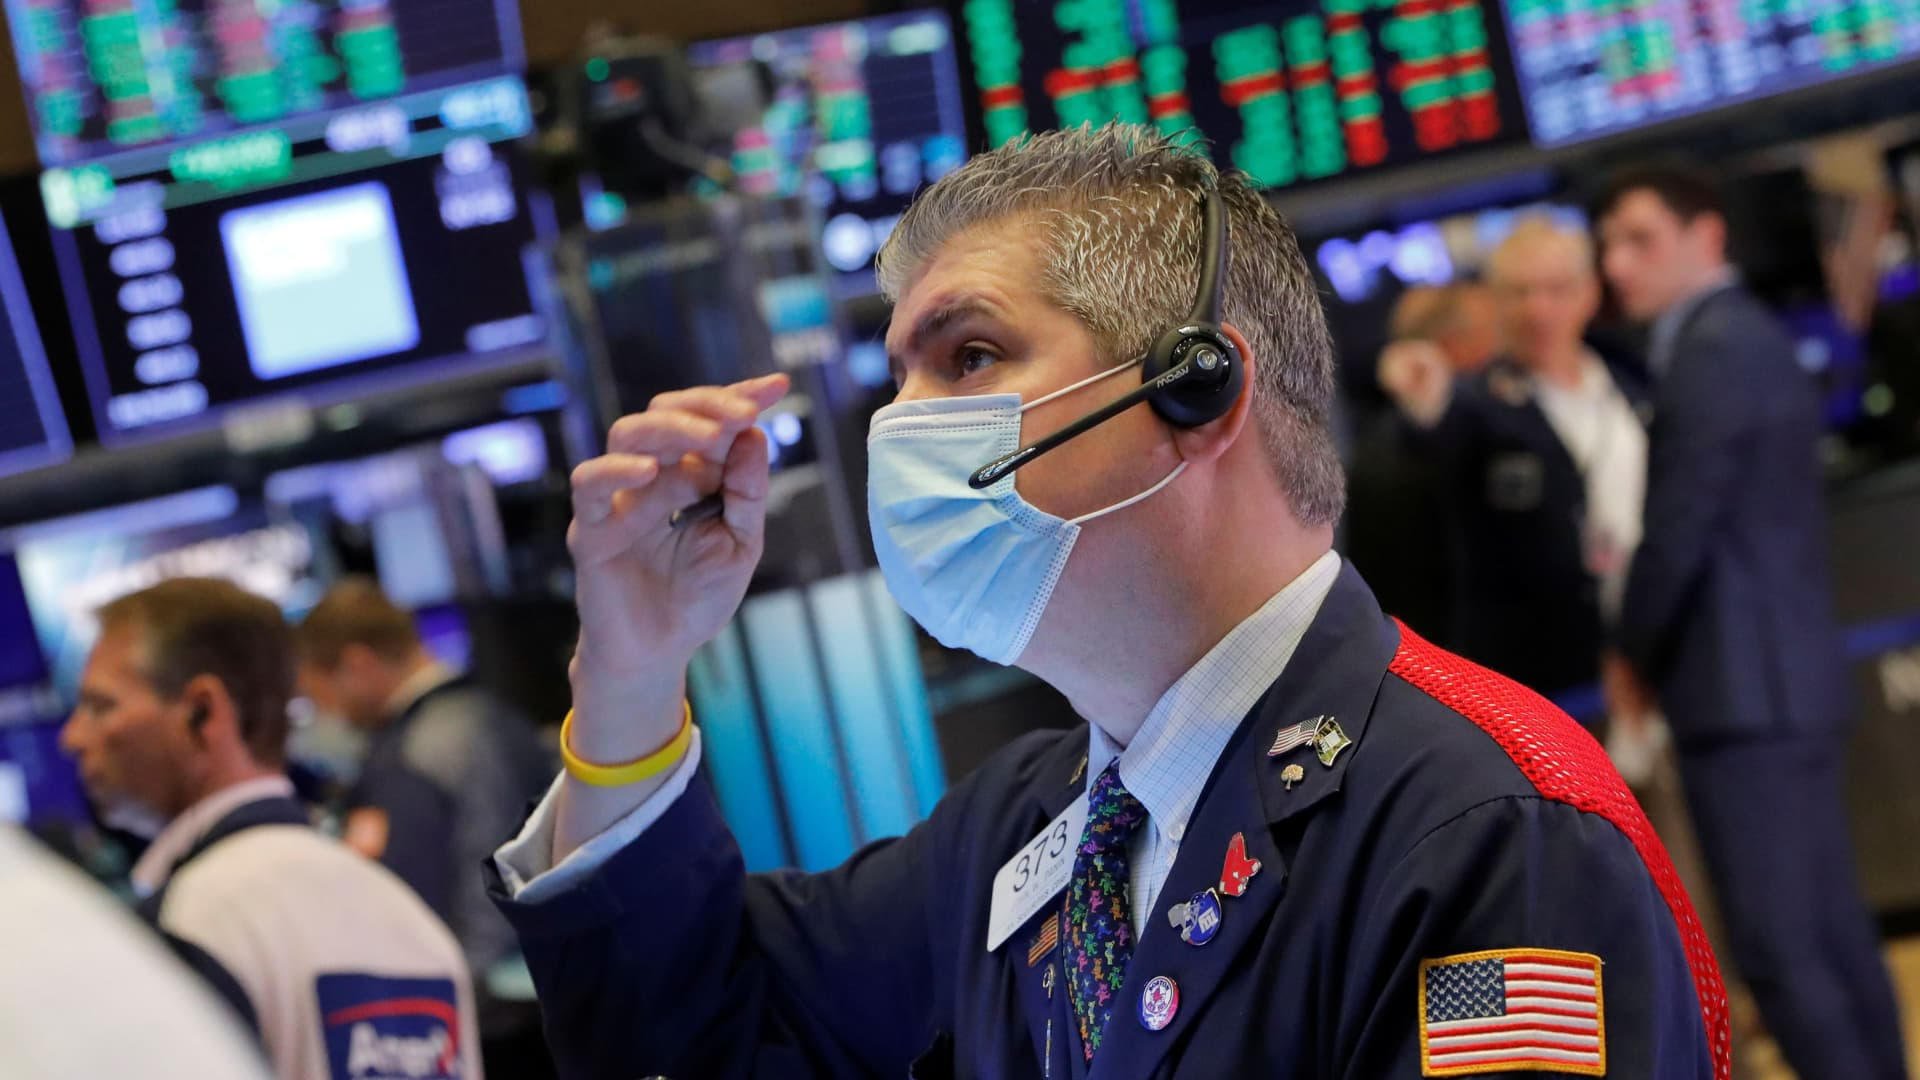 A trader works on the trading floor at the New York Stock Exchange (NYSE) in Manhattan, New York City, U.S., August 10, 2021.